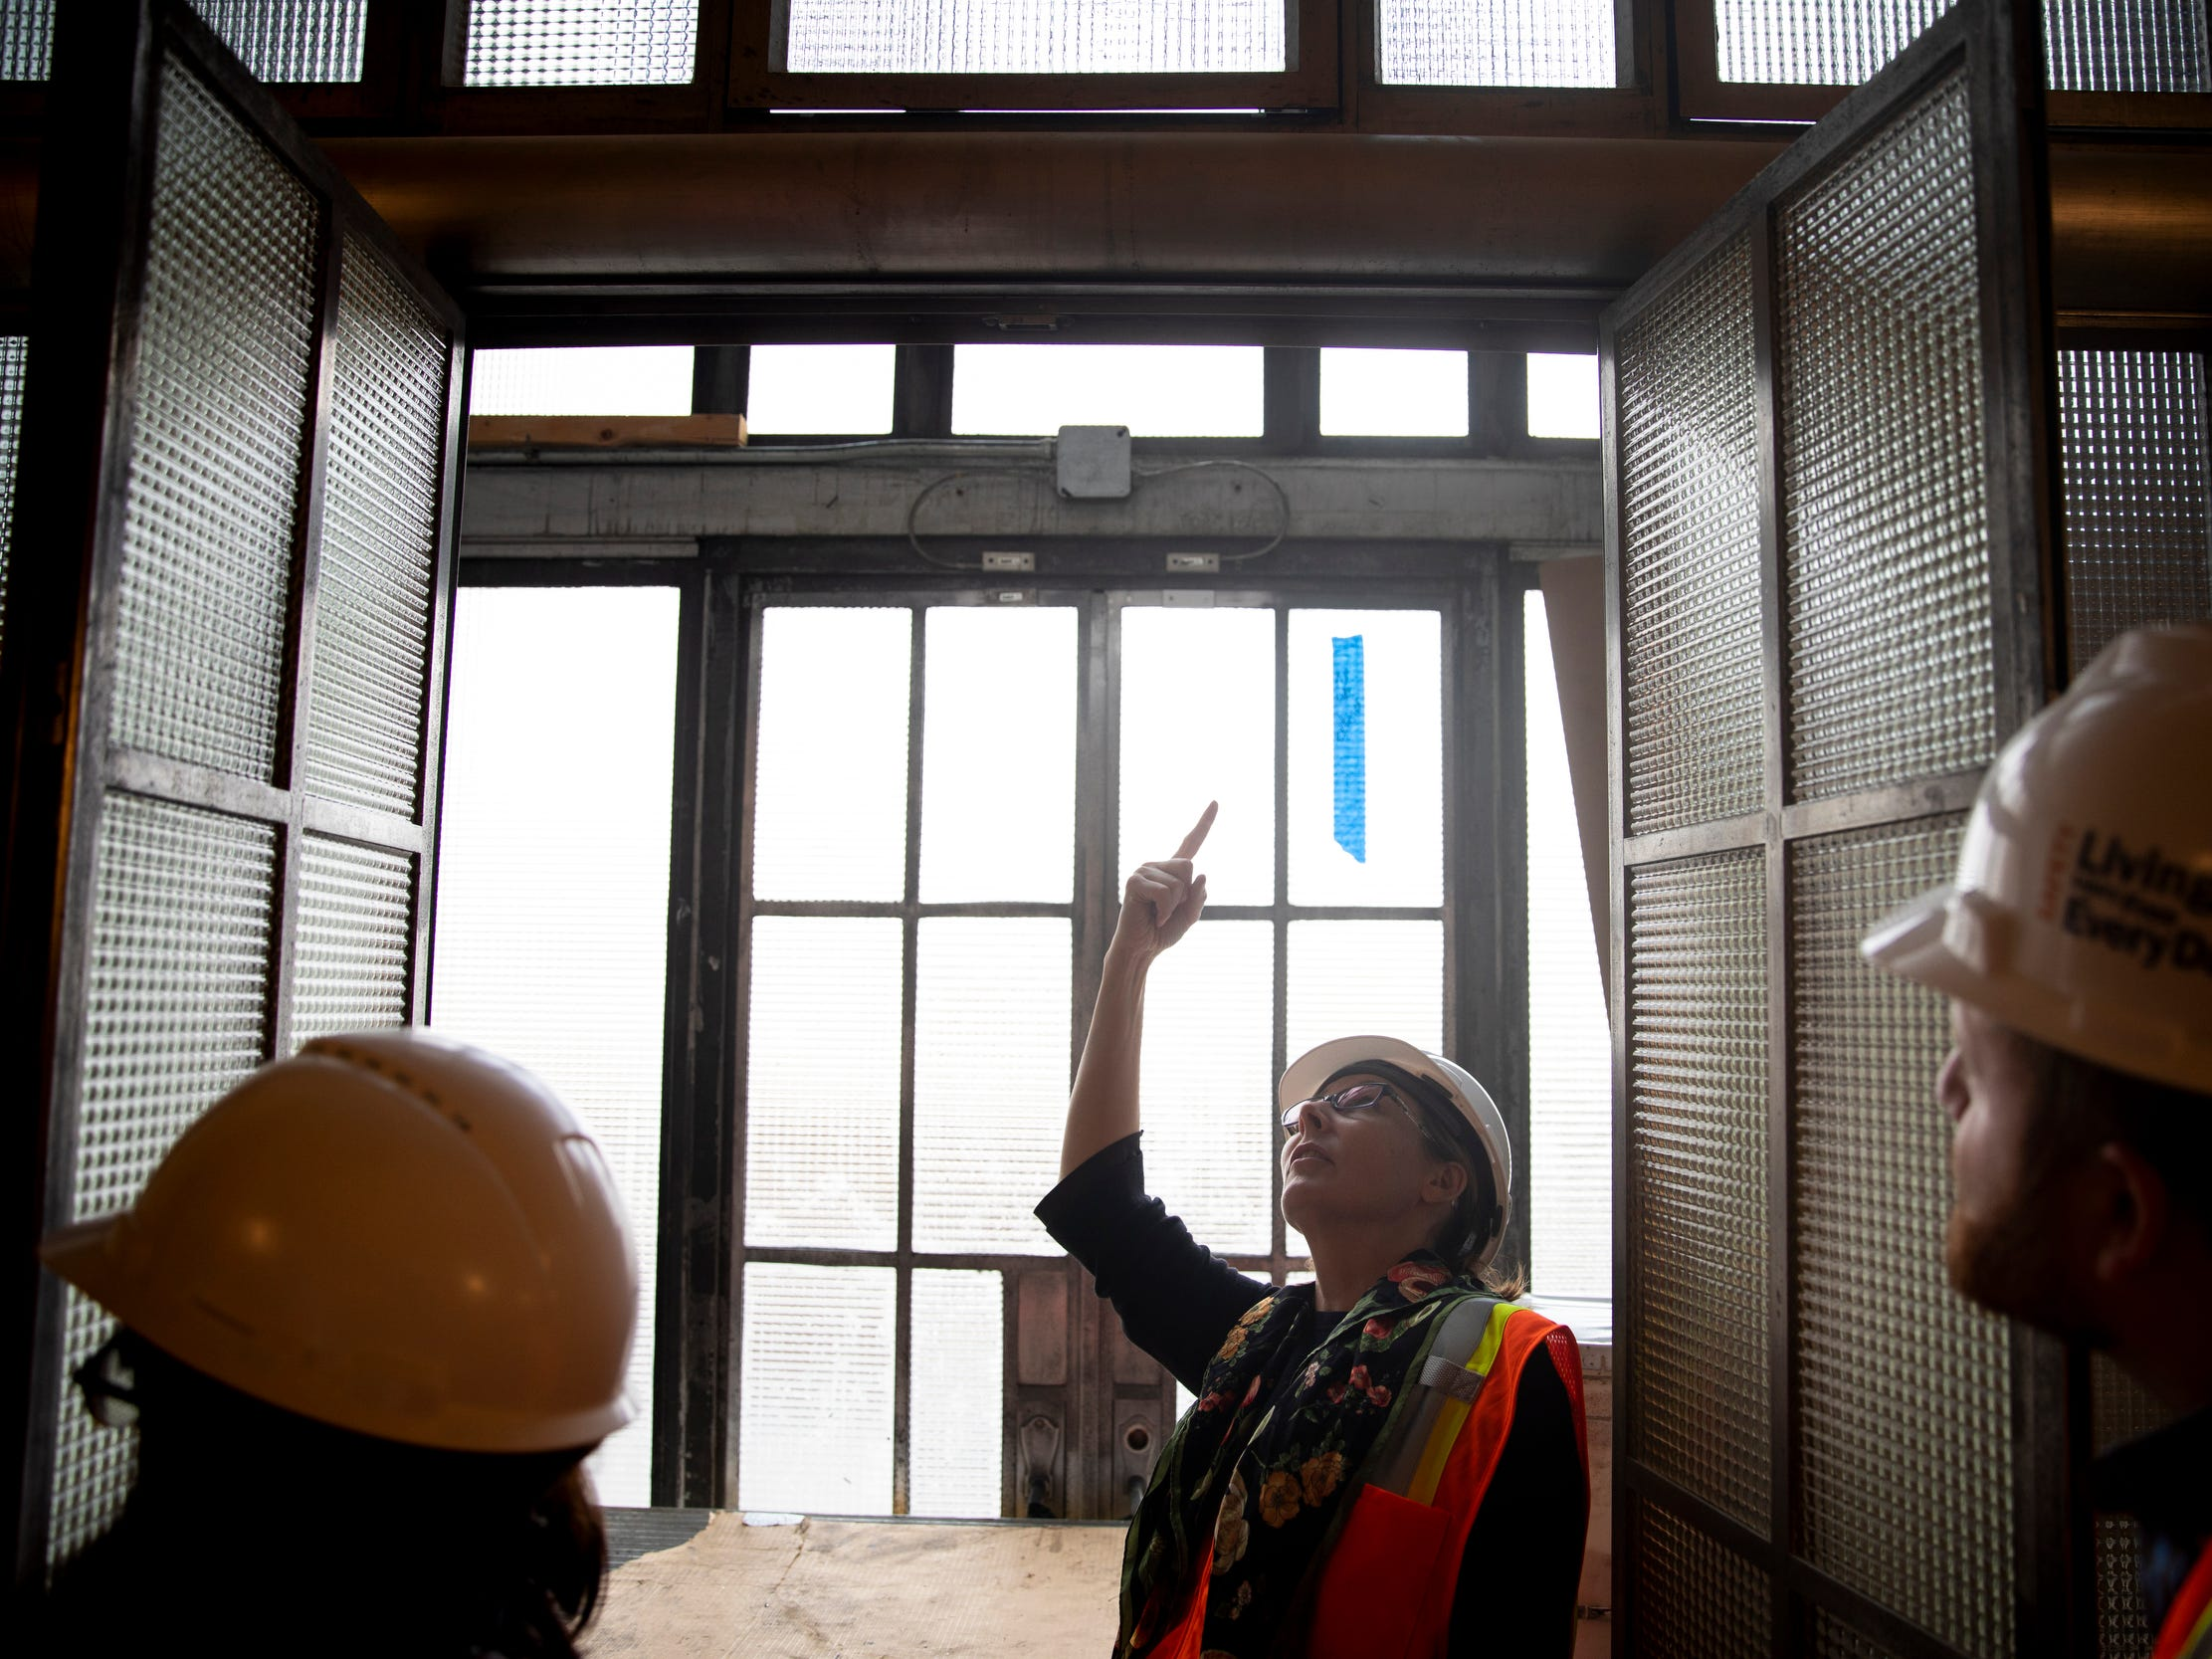 Elizabeth Pierce, President & CEO of The Cincinnati Museum Center, gives a tour of the $228 million restoration project of Union Terminal. This is the first structural restoration in the building's 85-year-old history.